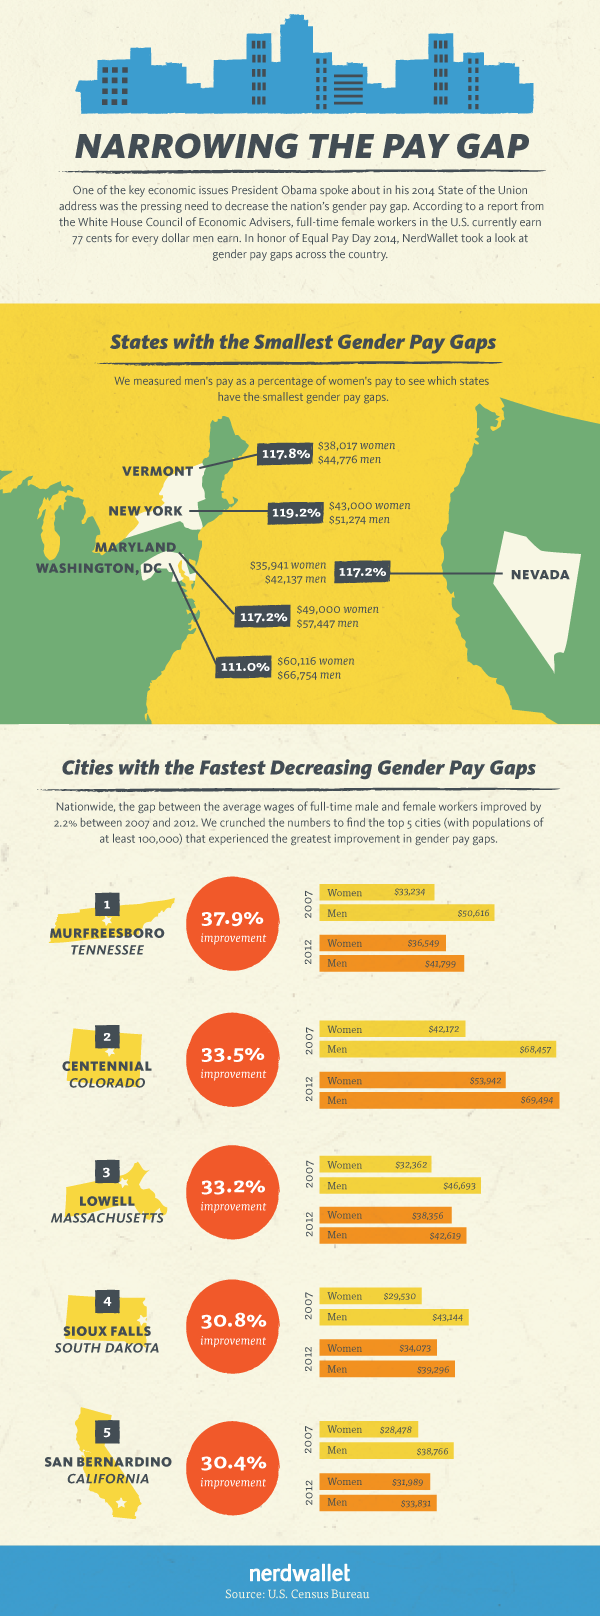 Narrowing the Pay Gap